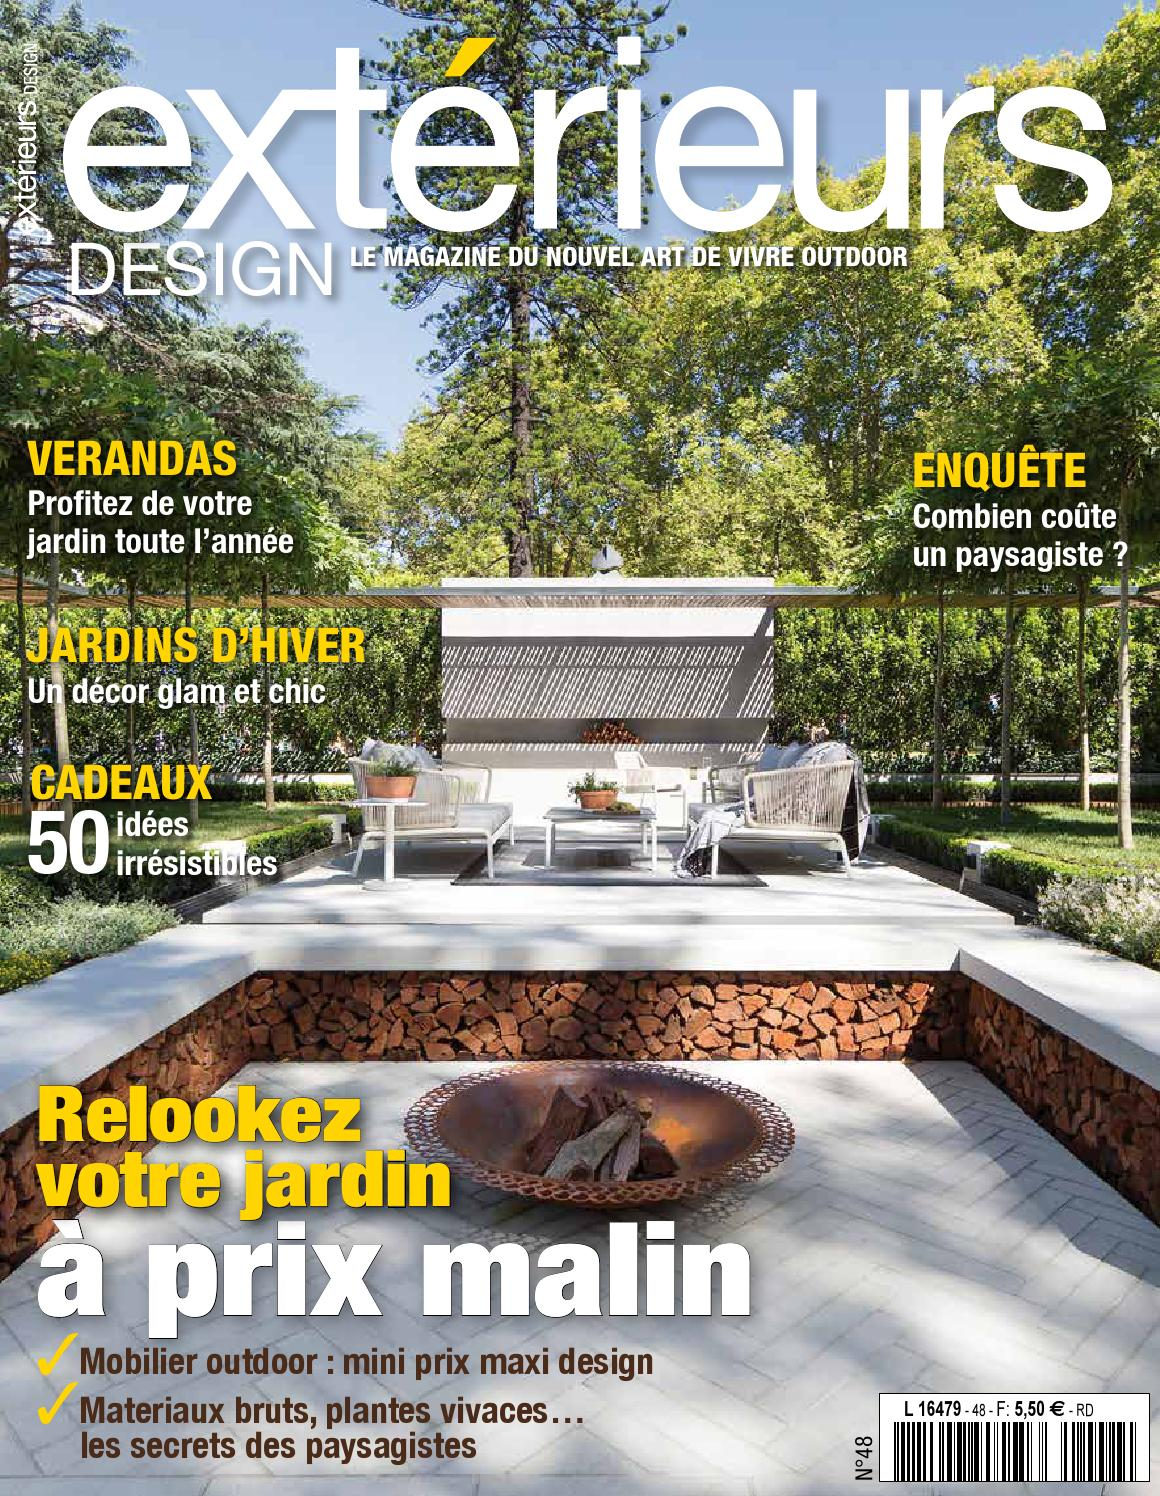 Exterieurs design 2015 by Planika Fires - issuu